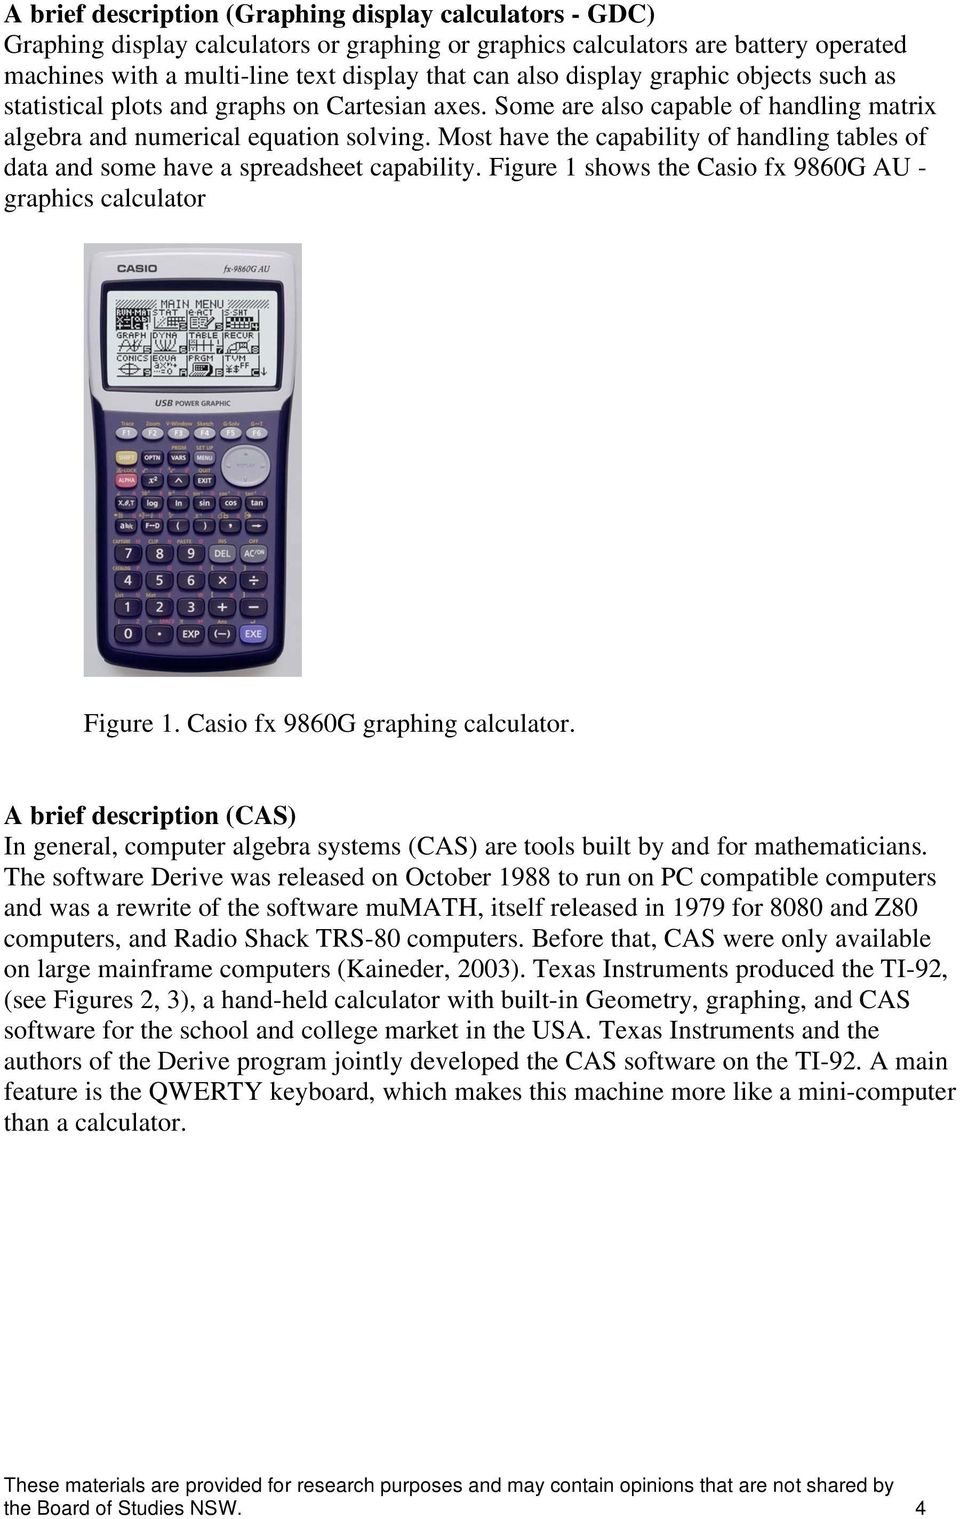 Most have the capability of handling tables of data and some have a spreadsheet capability. Figure 1 shows the Casio fx 9860G AU - graphics calculator Figure 1. Casio fx 9860G graphing calculator.